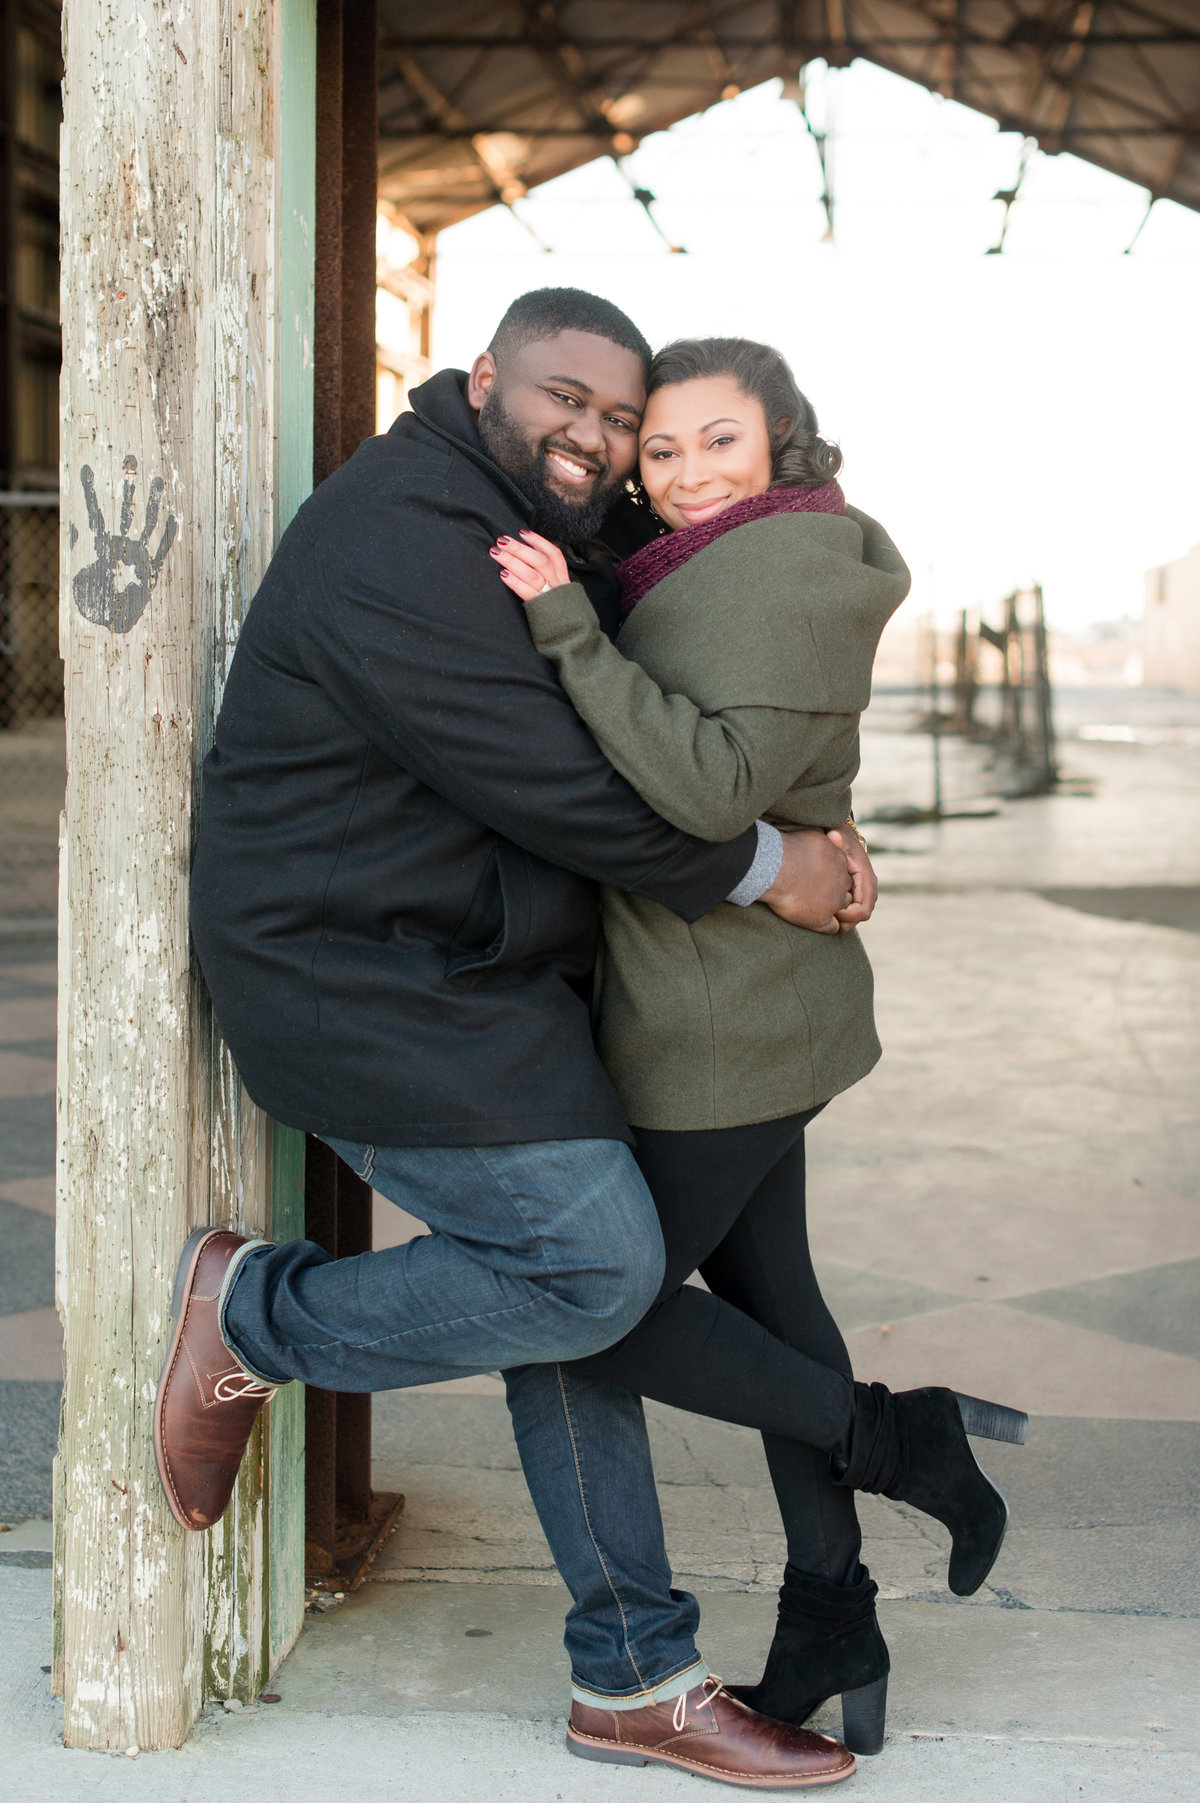 kiana-don-asbury-park-engagement-session-imagery-by-marianne-2017-33